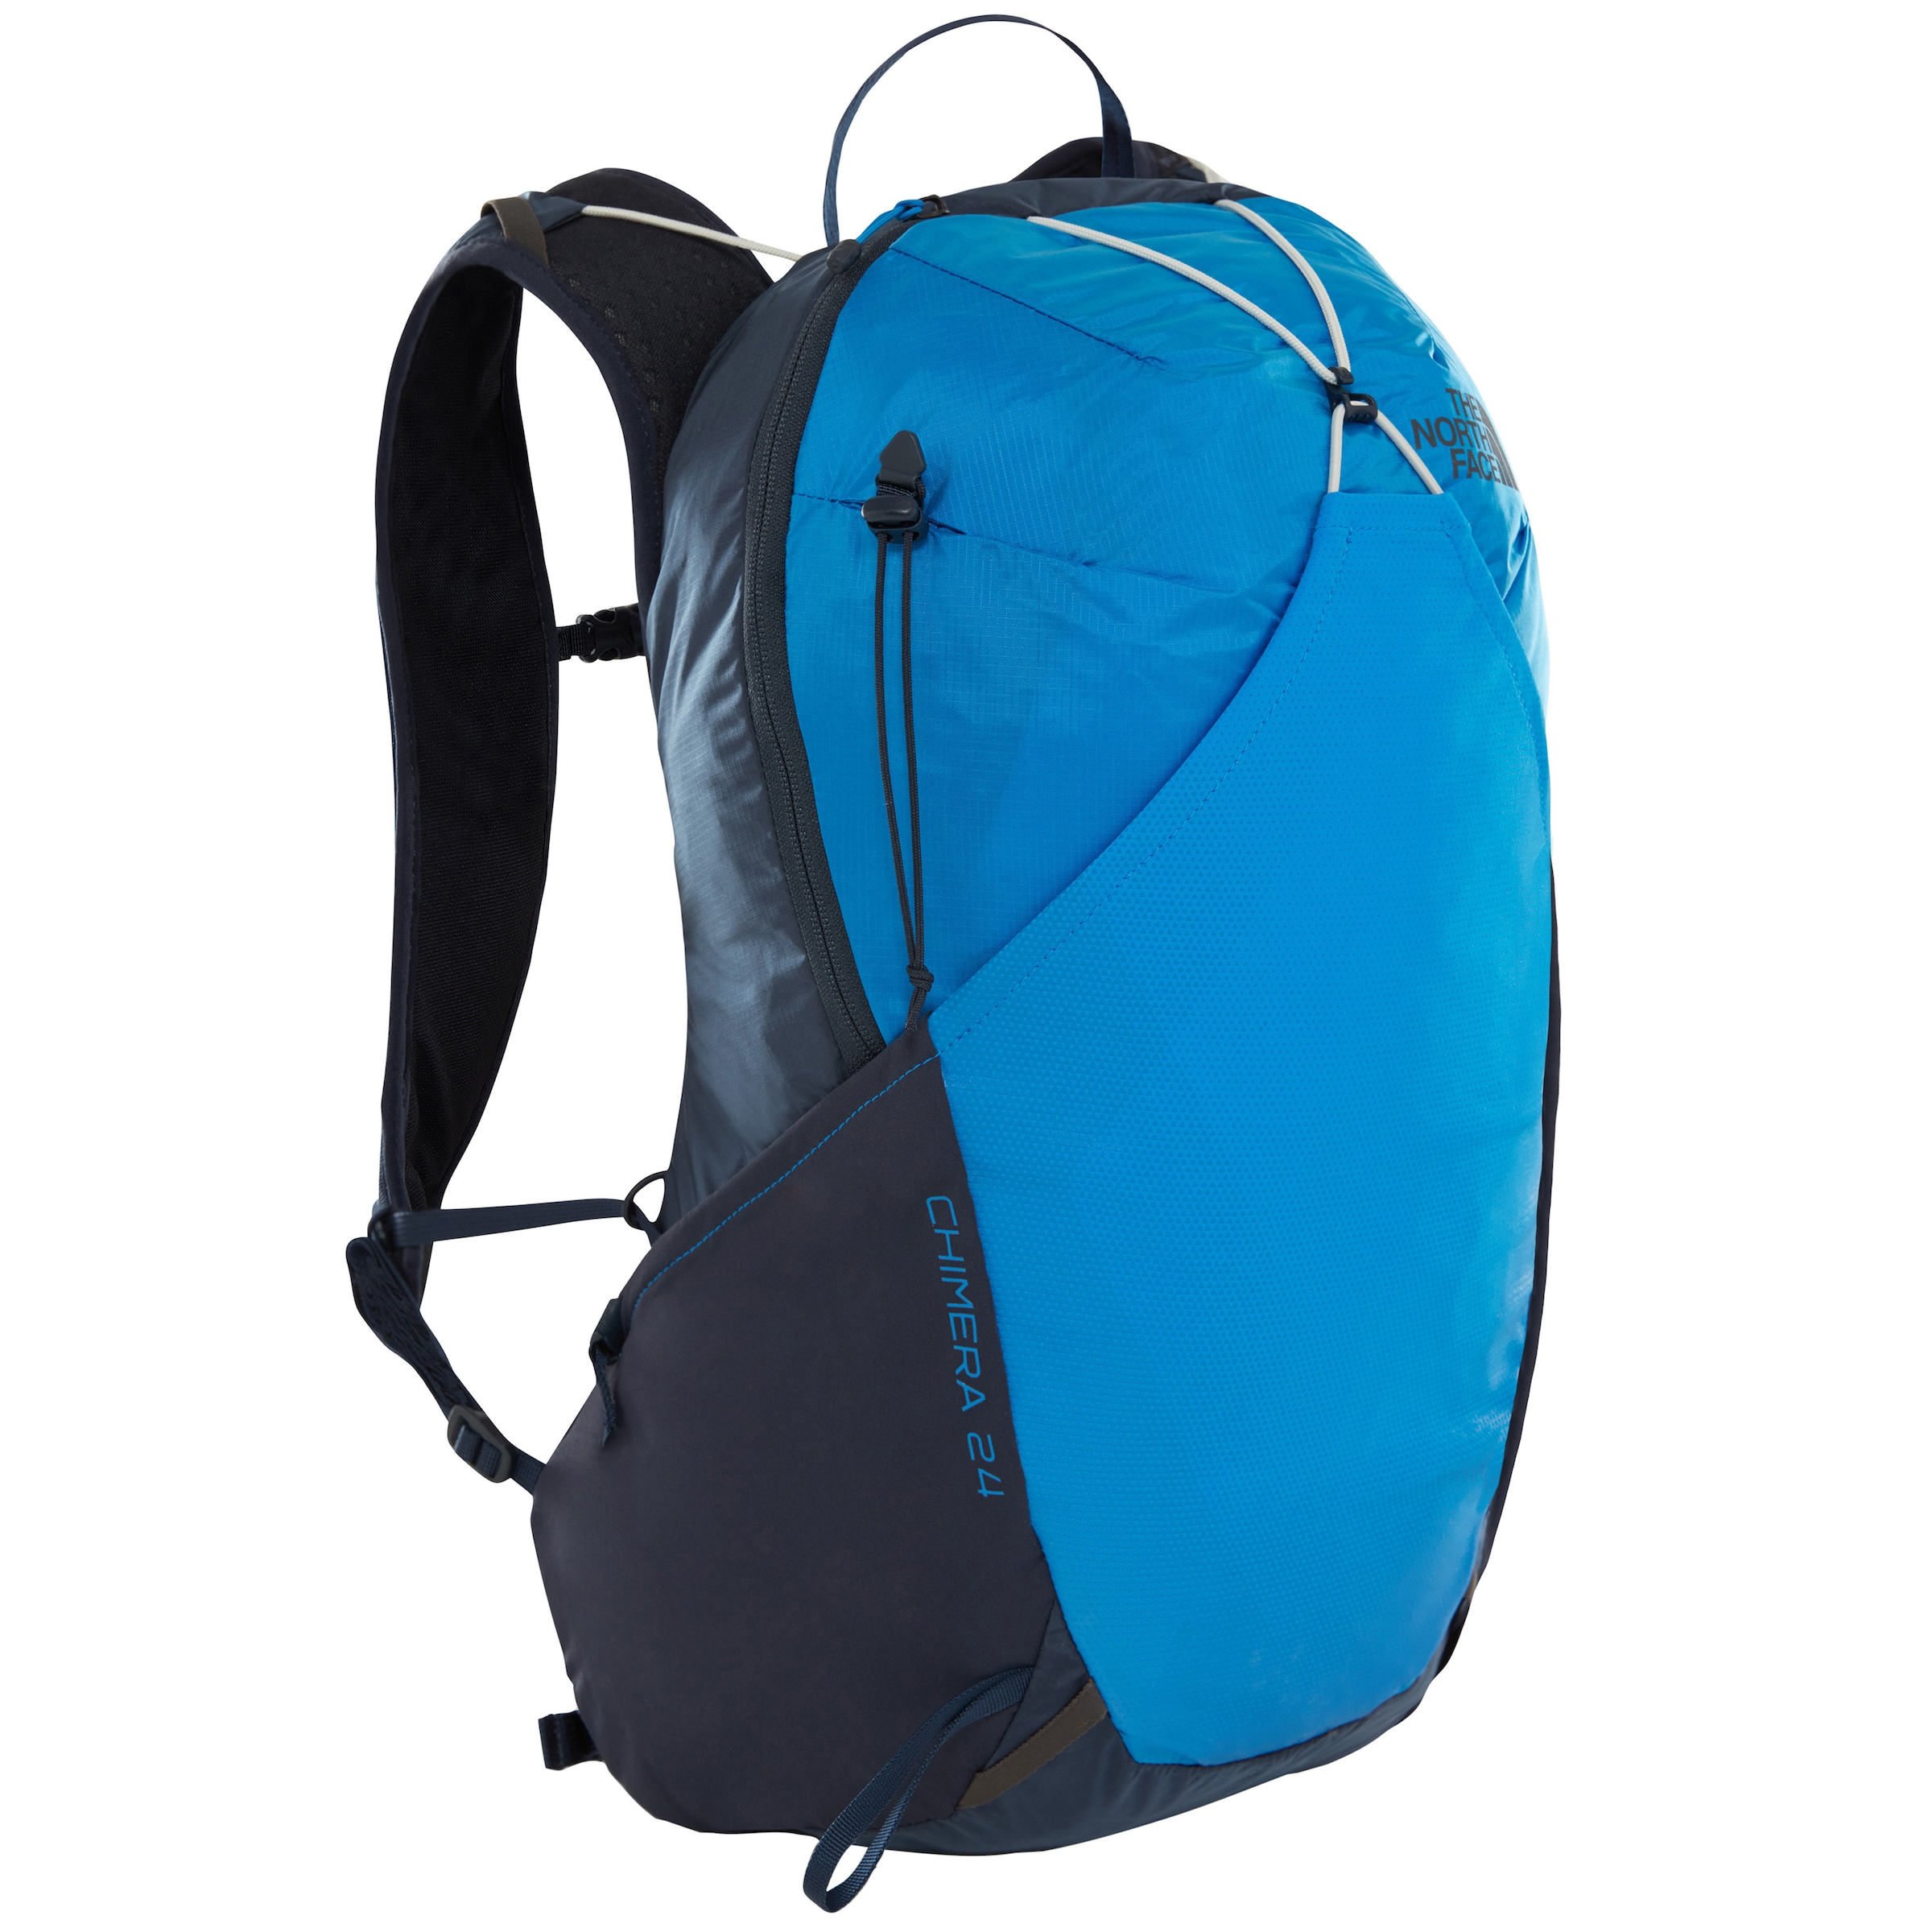 BlauNavy North In Rucksack 24' Face The 'chimera y7gfvb6IY